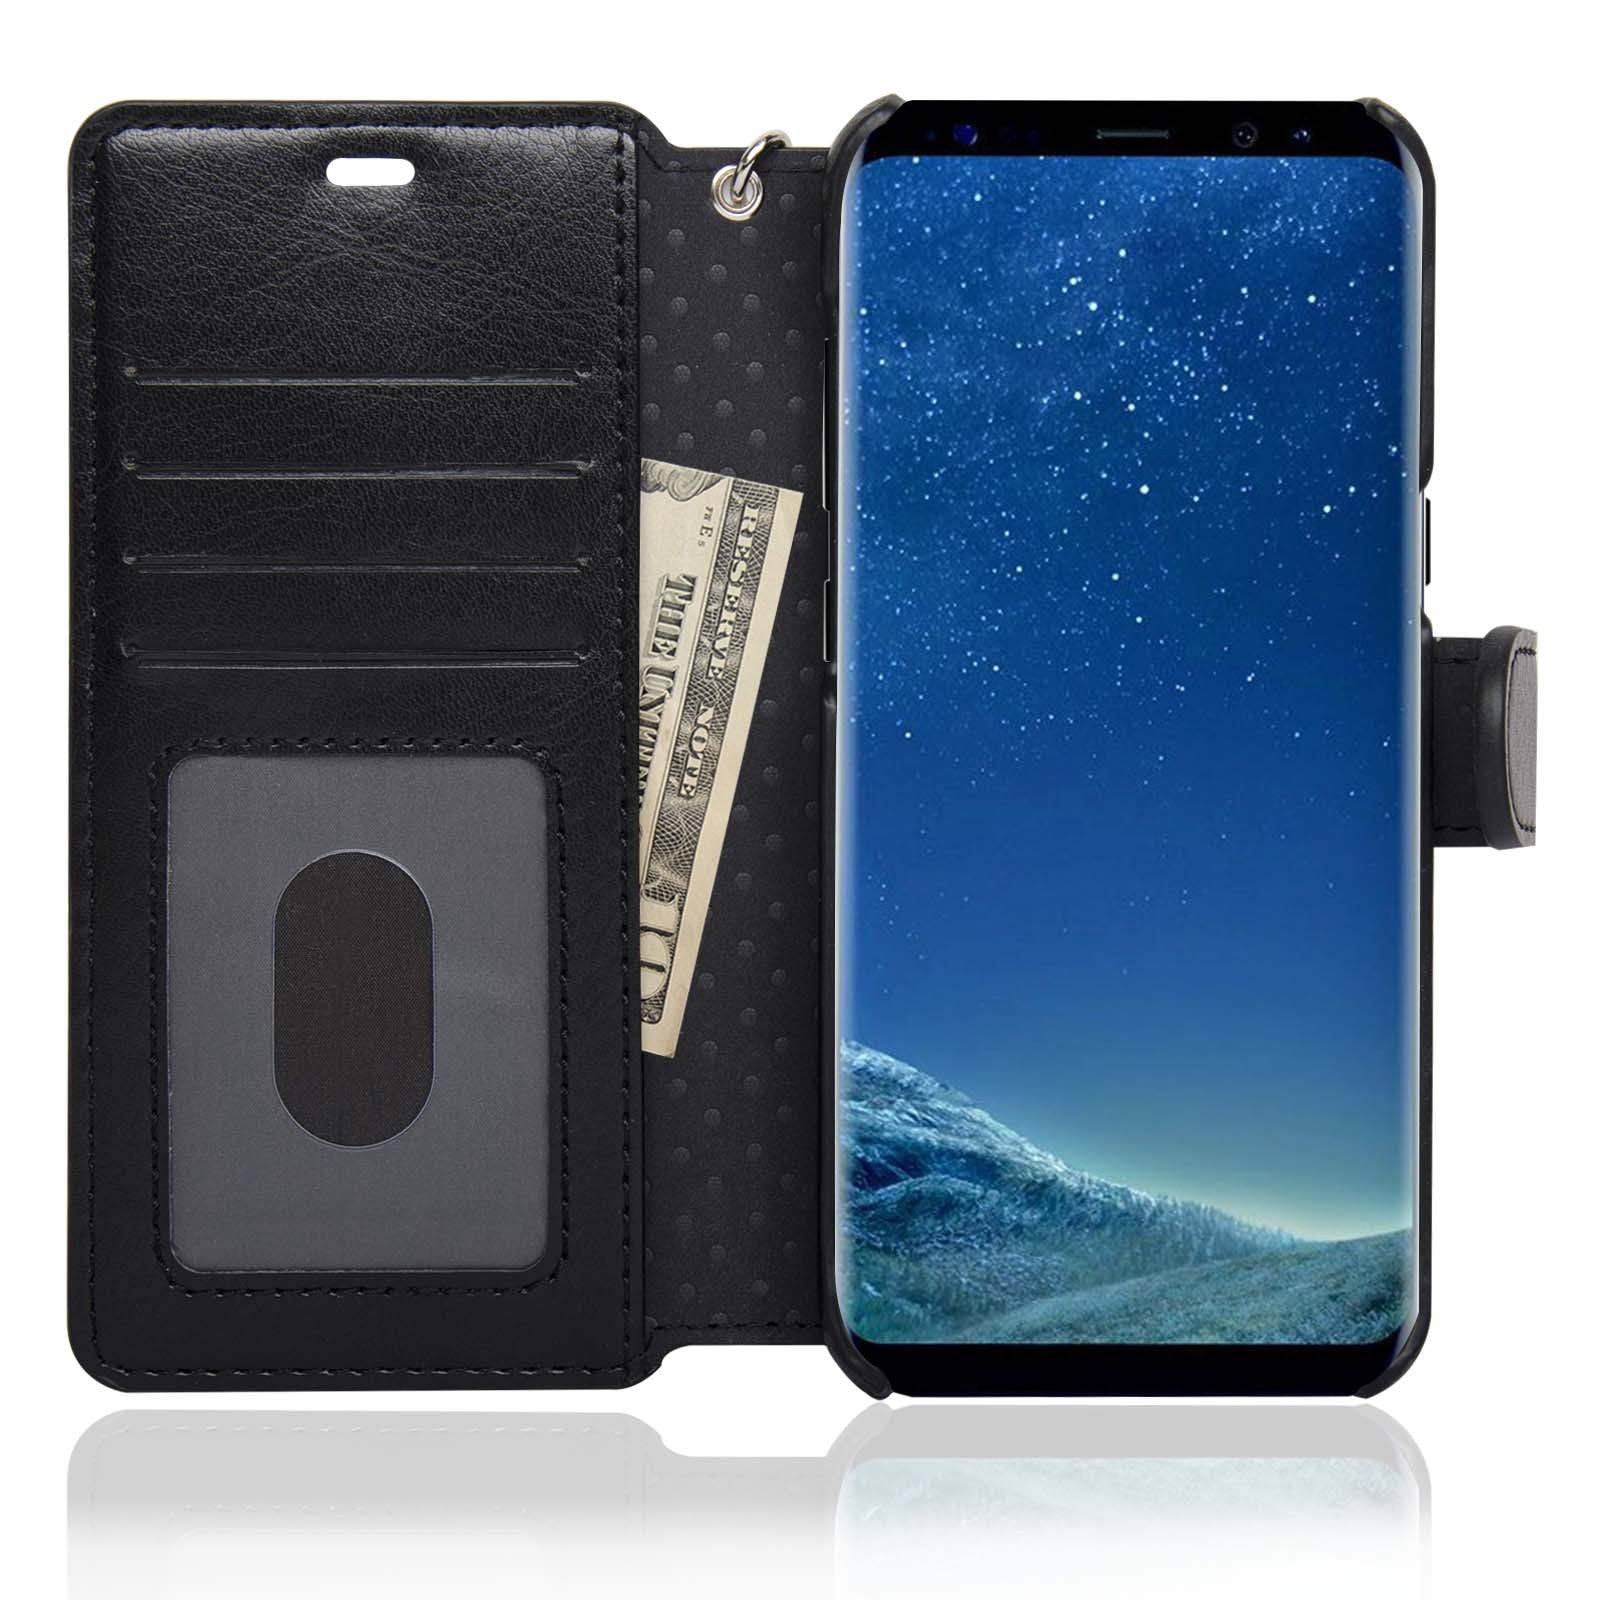 low priced a6b3b 829c5 NAVOR Zevo Samsung Galaxy S8 Wallet Case Slim Fit Light Premium Flip Cover  with RFID Protection